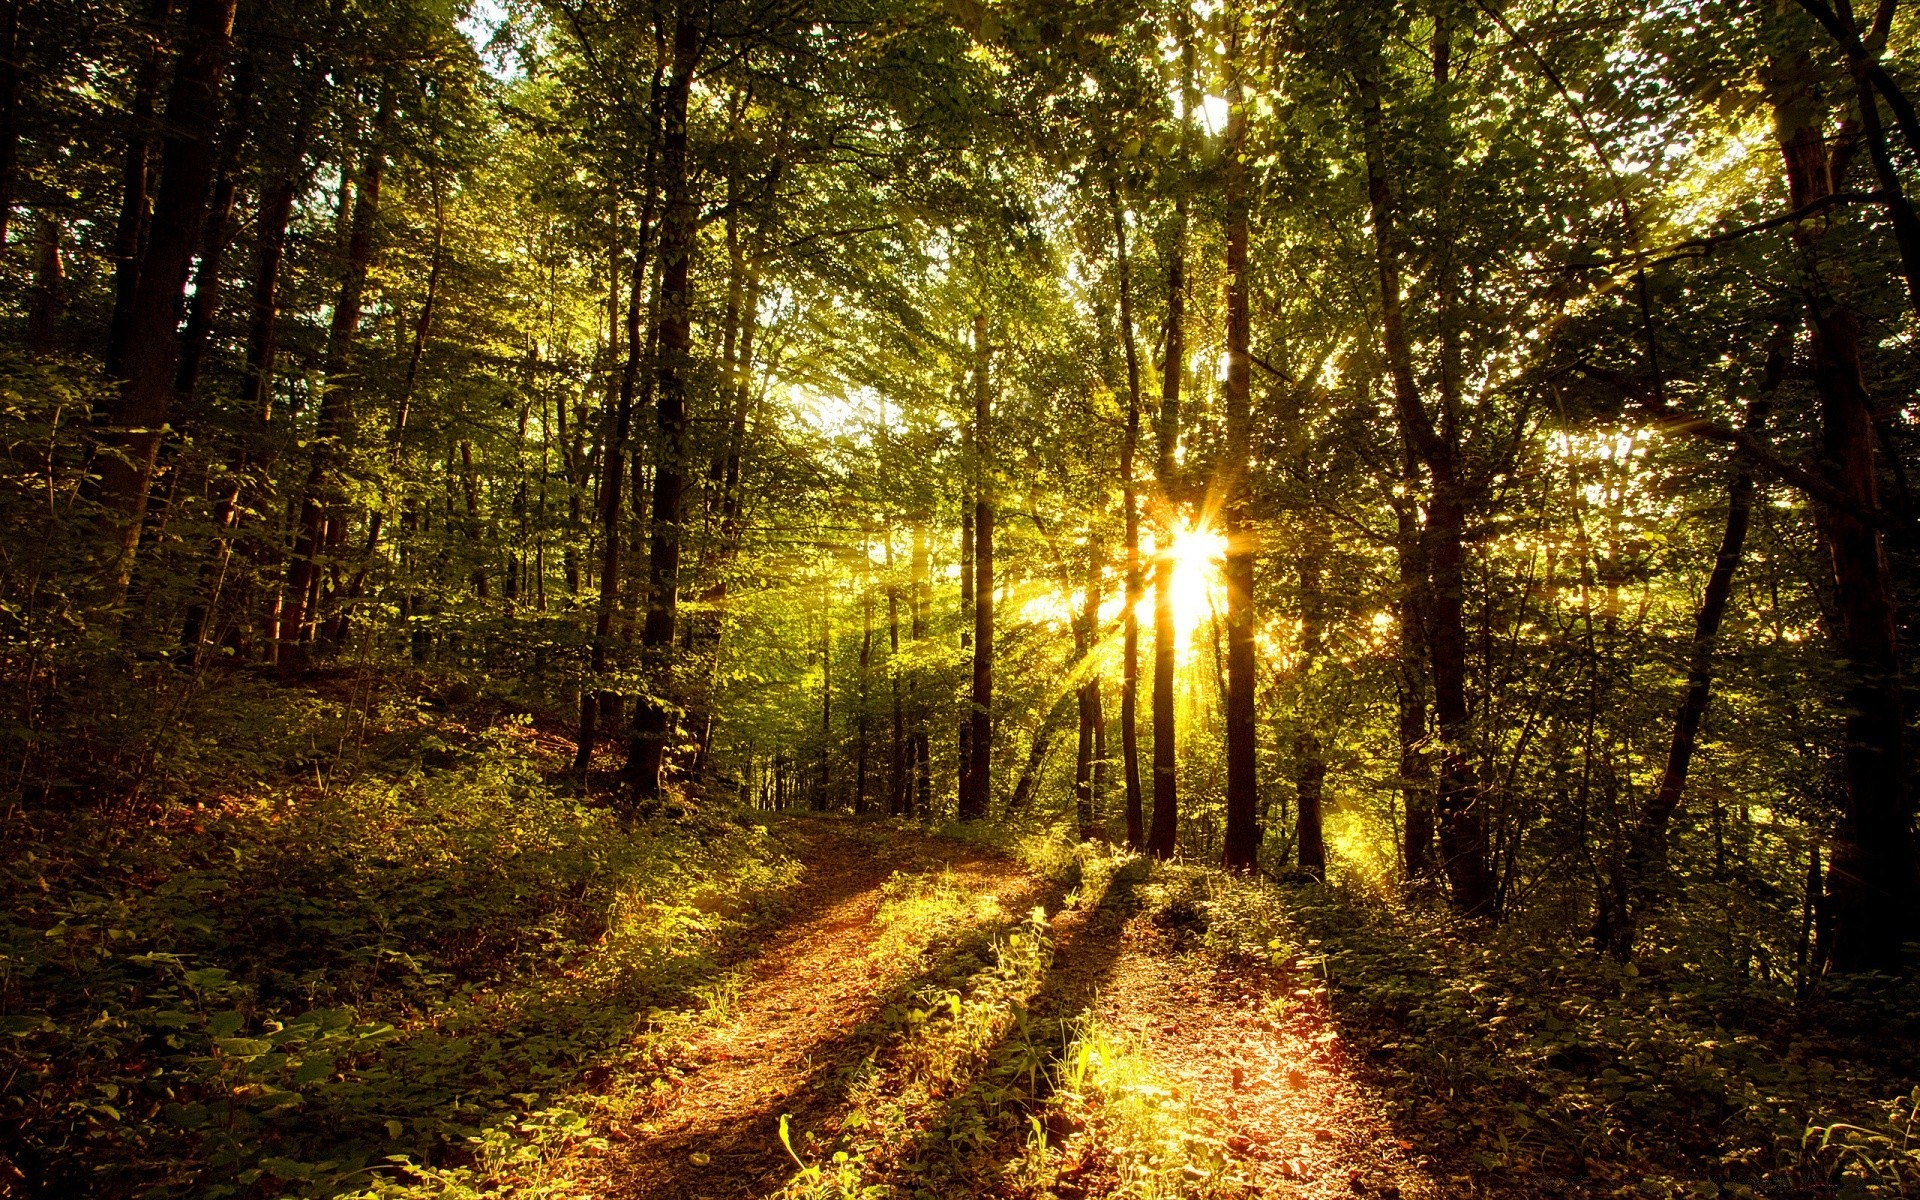 sci 275 week 7 american forests and range lands Sci 275 week 7 american rangelands and forests complete the associate level material: american rangelands and forests located on the student website click the assignment files tab to submit your assignment.